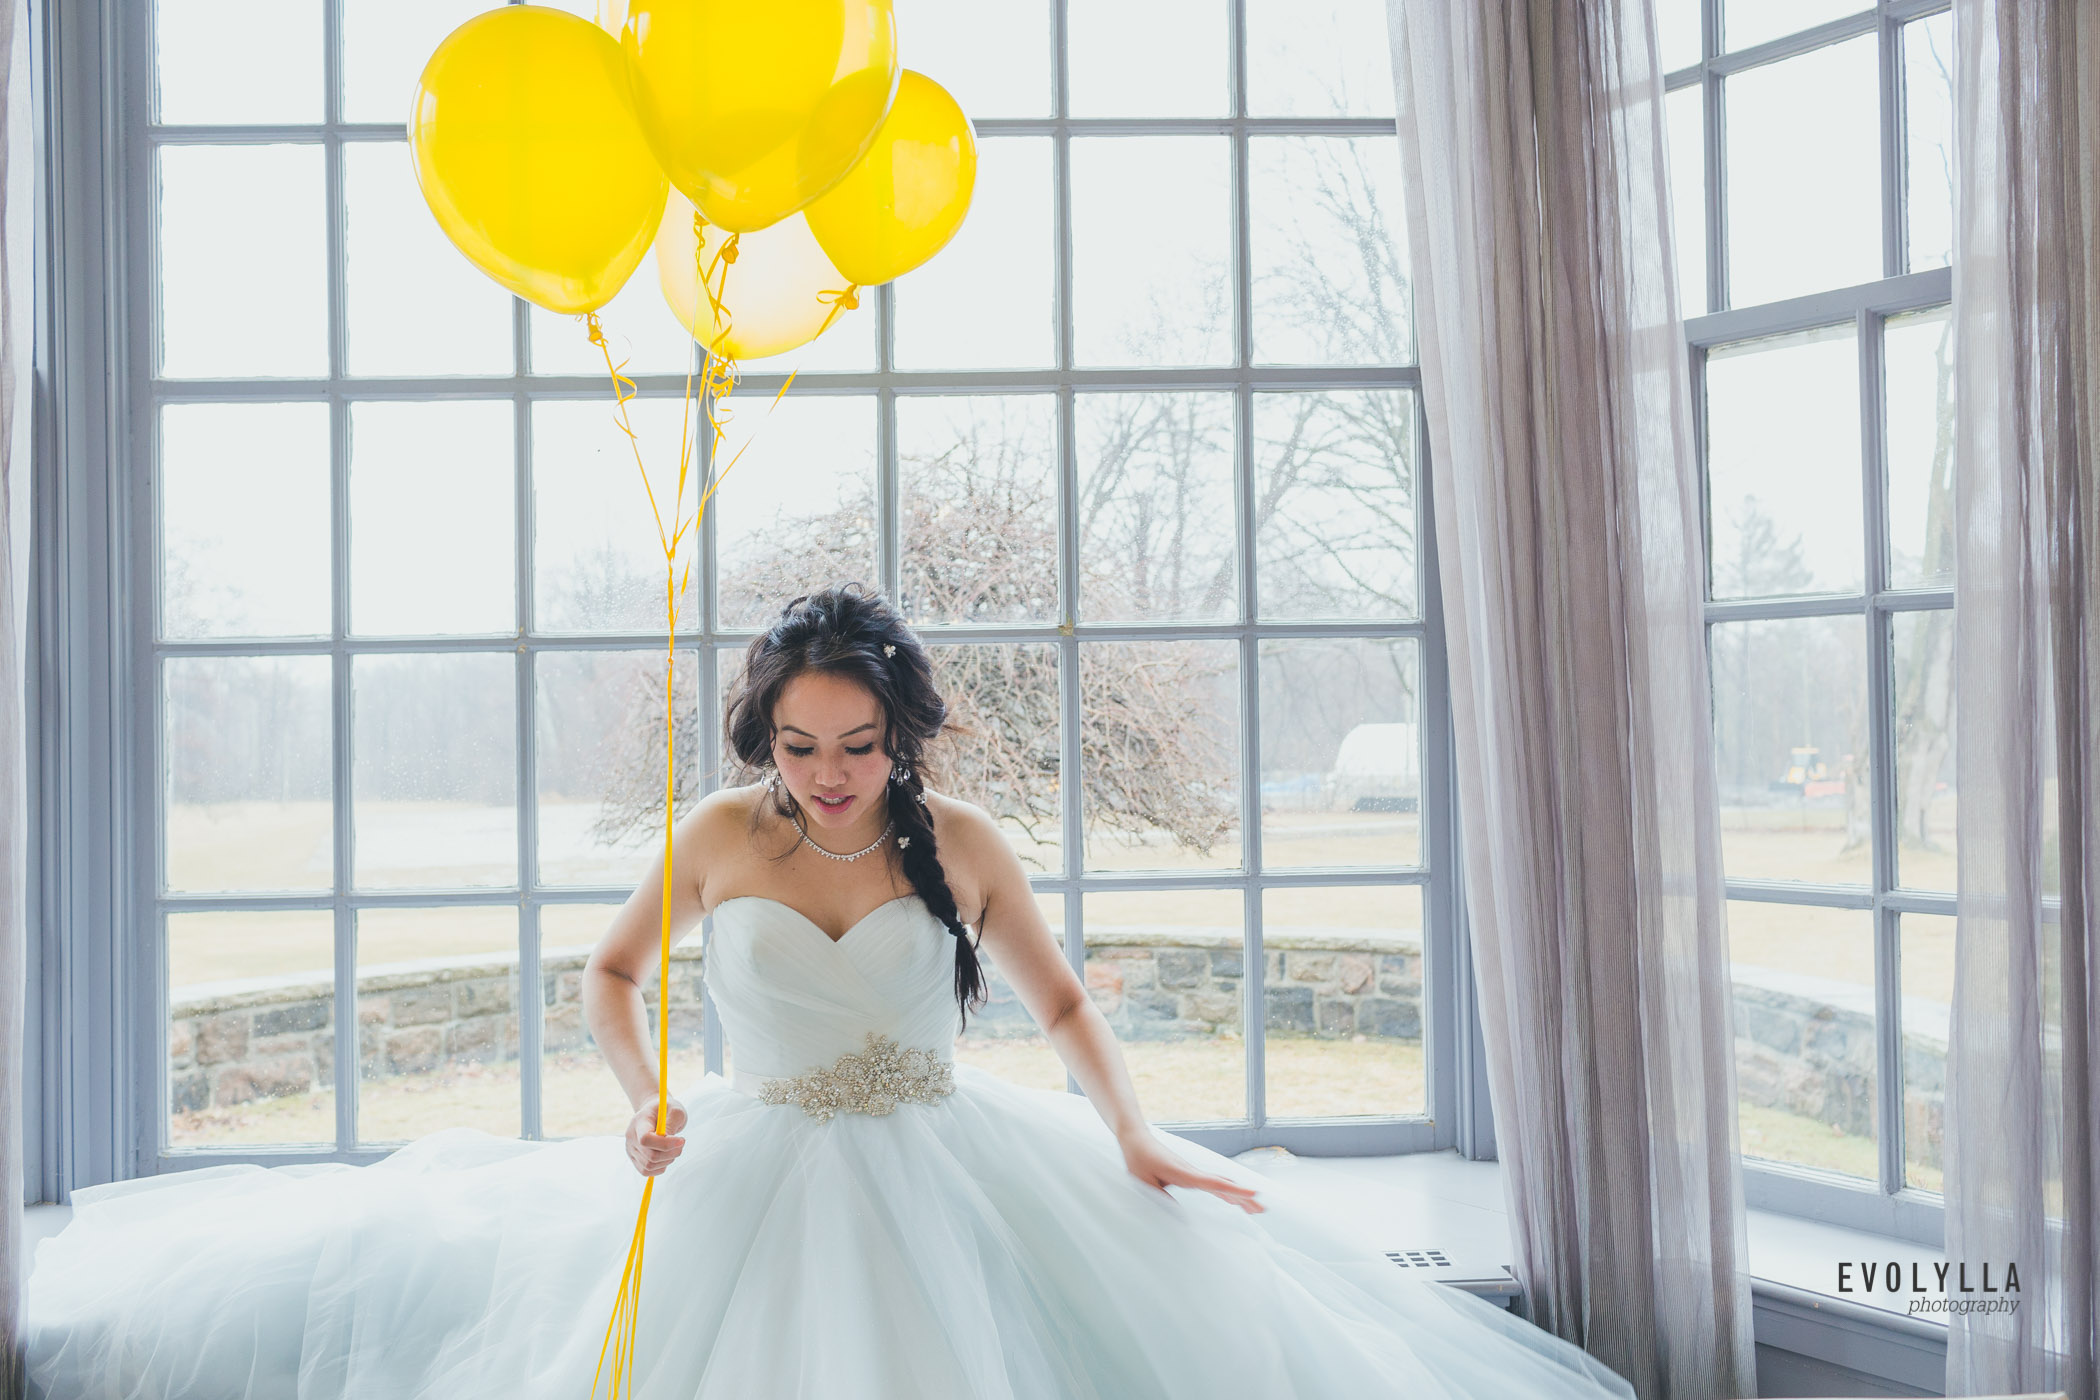 Toronto Wedding Photography, Creative Editorial, Sunnybrook Estate, Evolylla Photography by Ally-3757.jpg